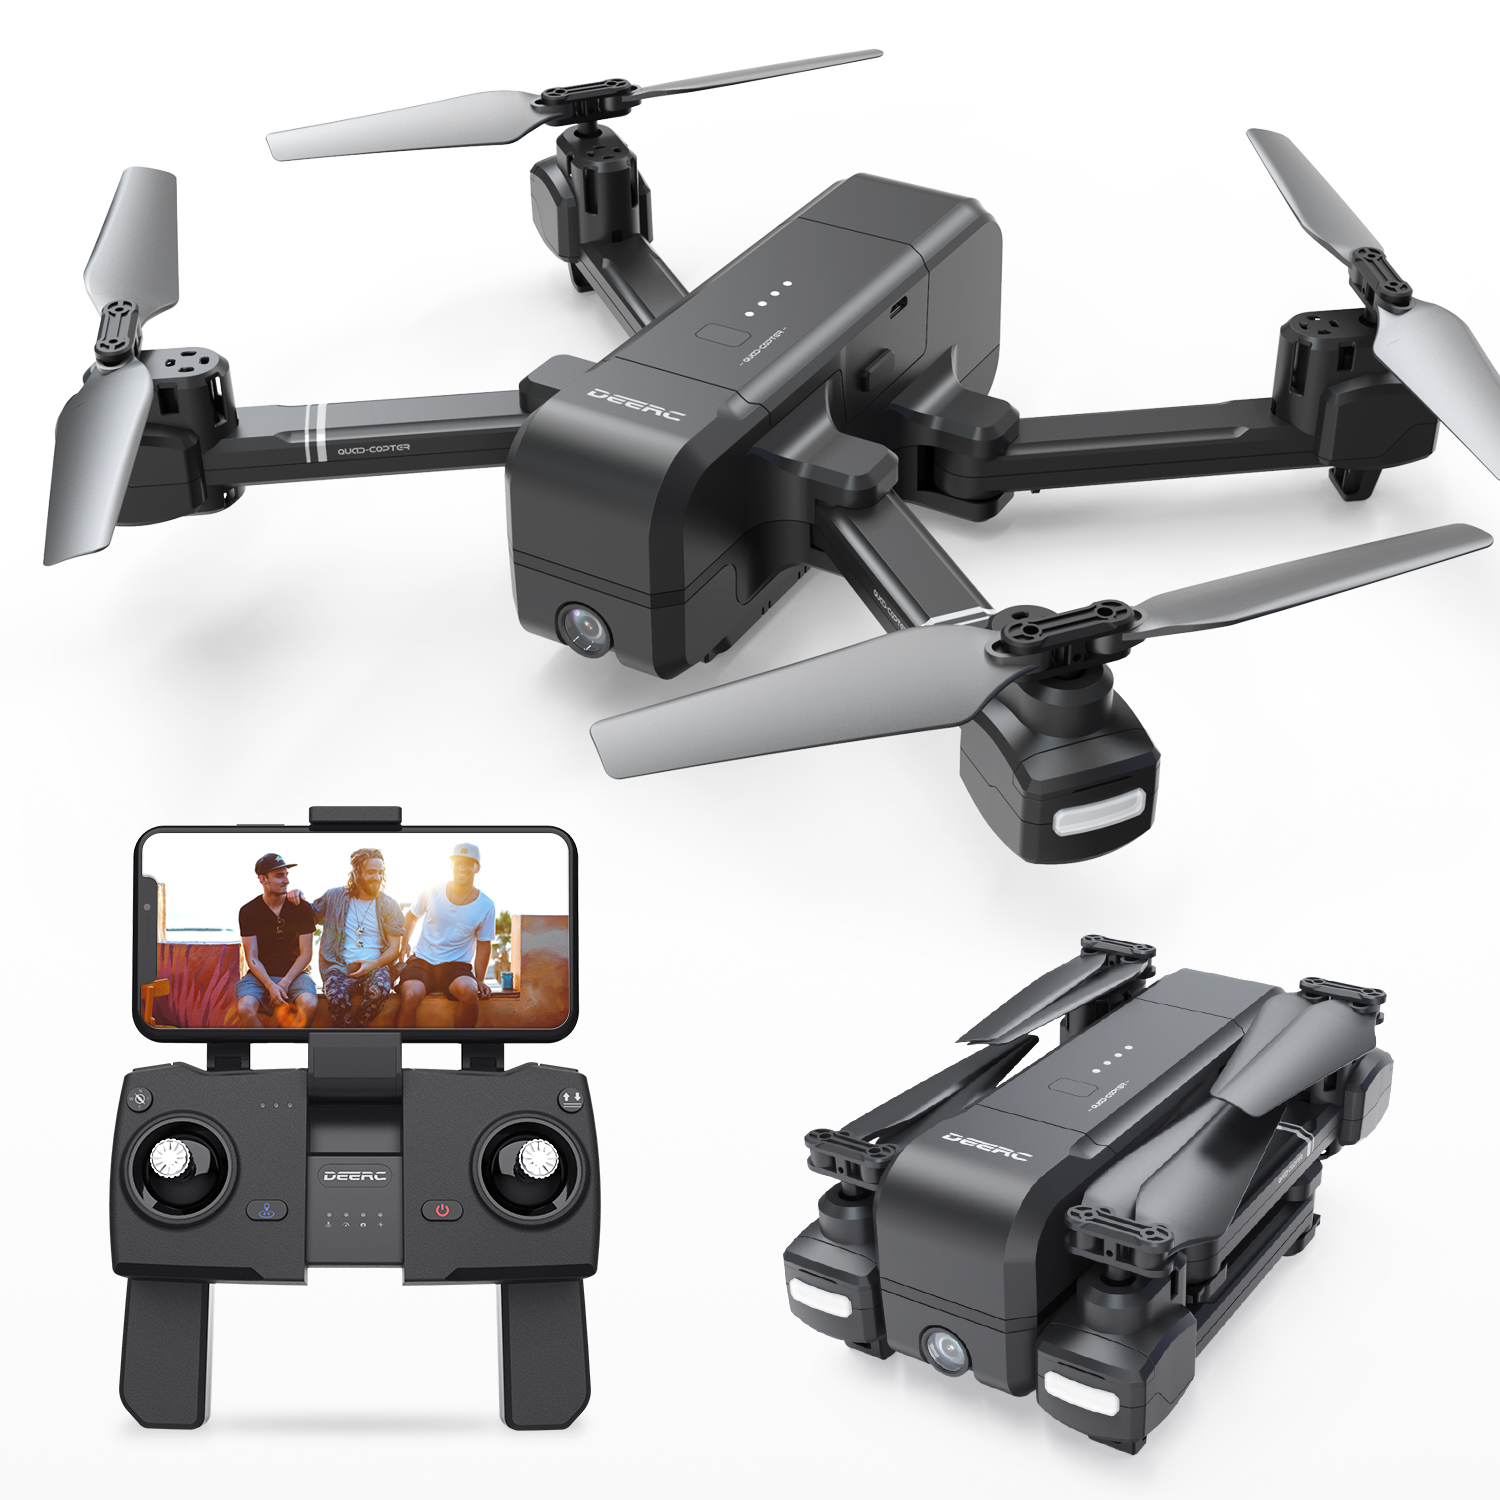 DEERC DE25 1080P FPV Wifi GPS Drone with Camera HD Foldable Portable Tapfly Active Track 18m Flight Hand Gesture RC HelicopterDEERC DE25 1080P FPV Wifi GPS Drone with Camera HD Foldable Portable Tapfly Active Track 18m Flight Hand Gesture RC Helicopter